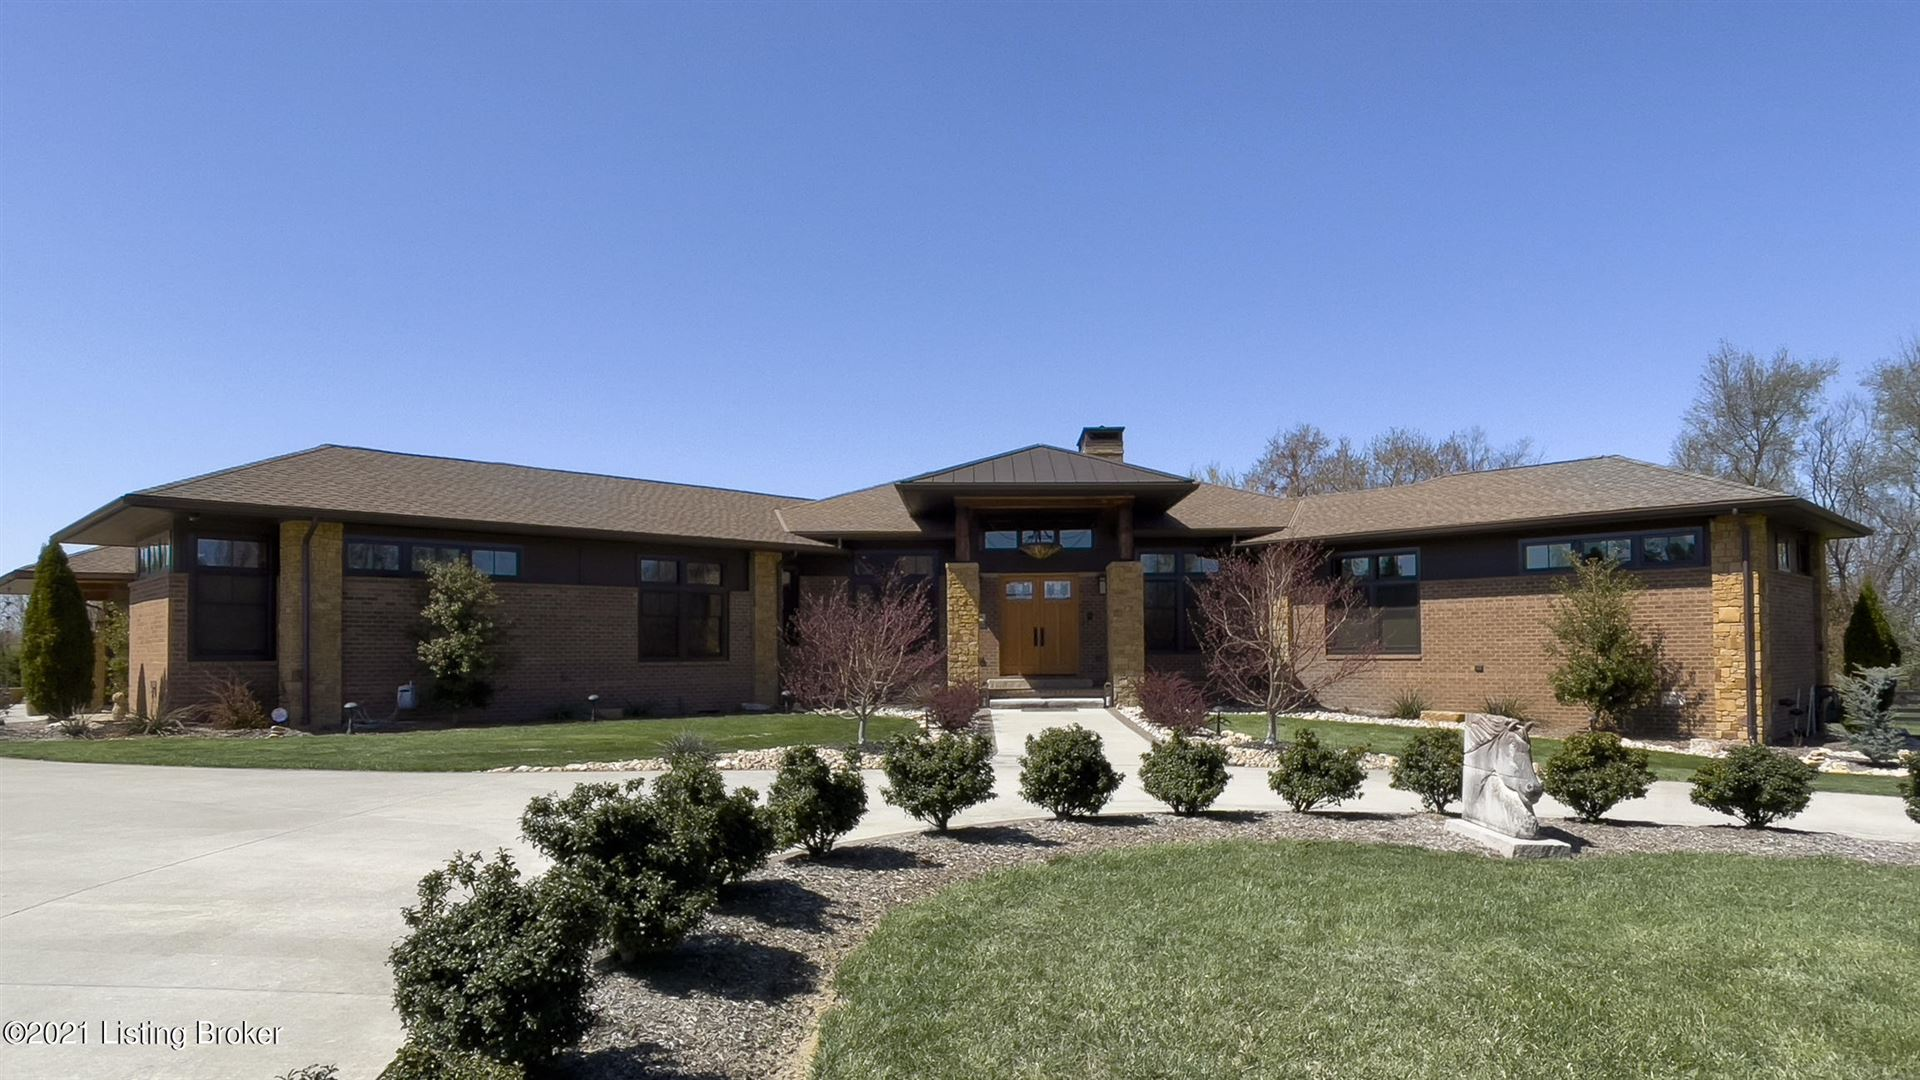 Photo for 9306 Deepa Dr, Prospect, KY 40059 (MLS # 1582755)